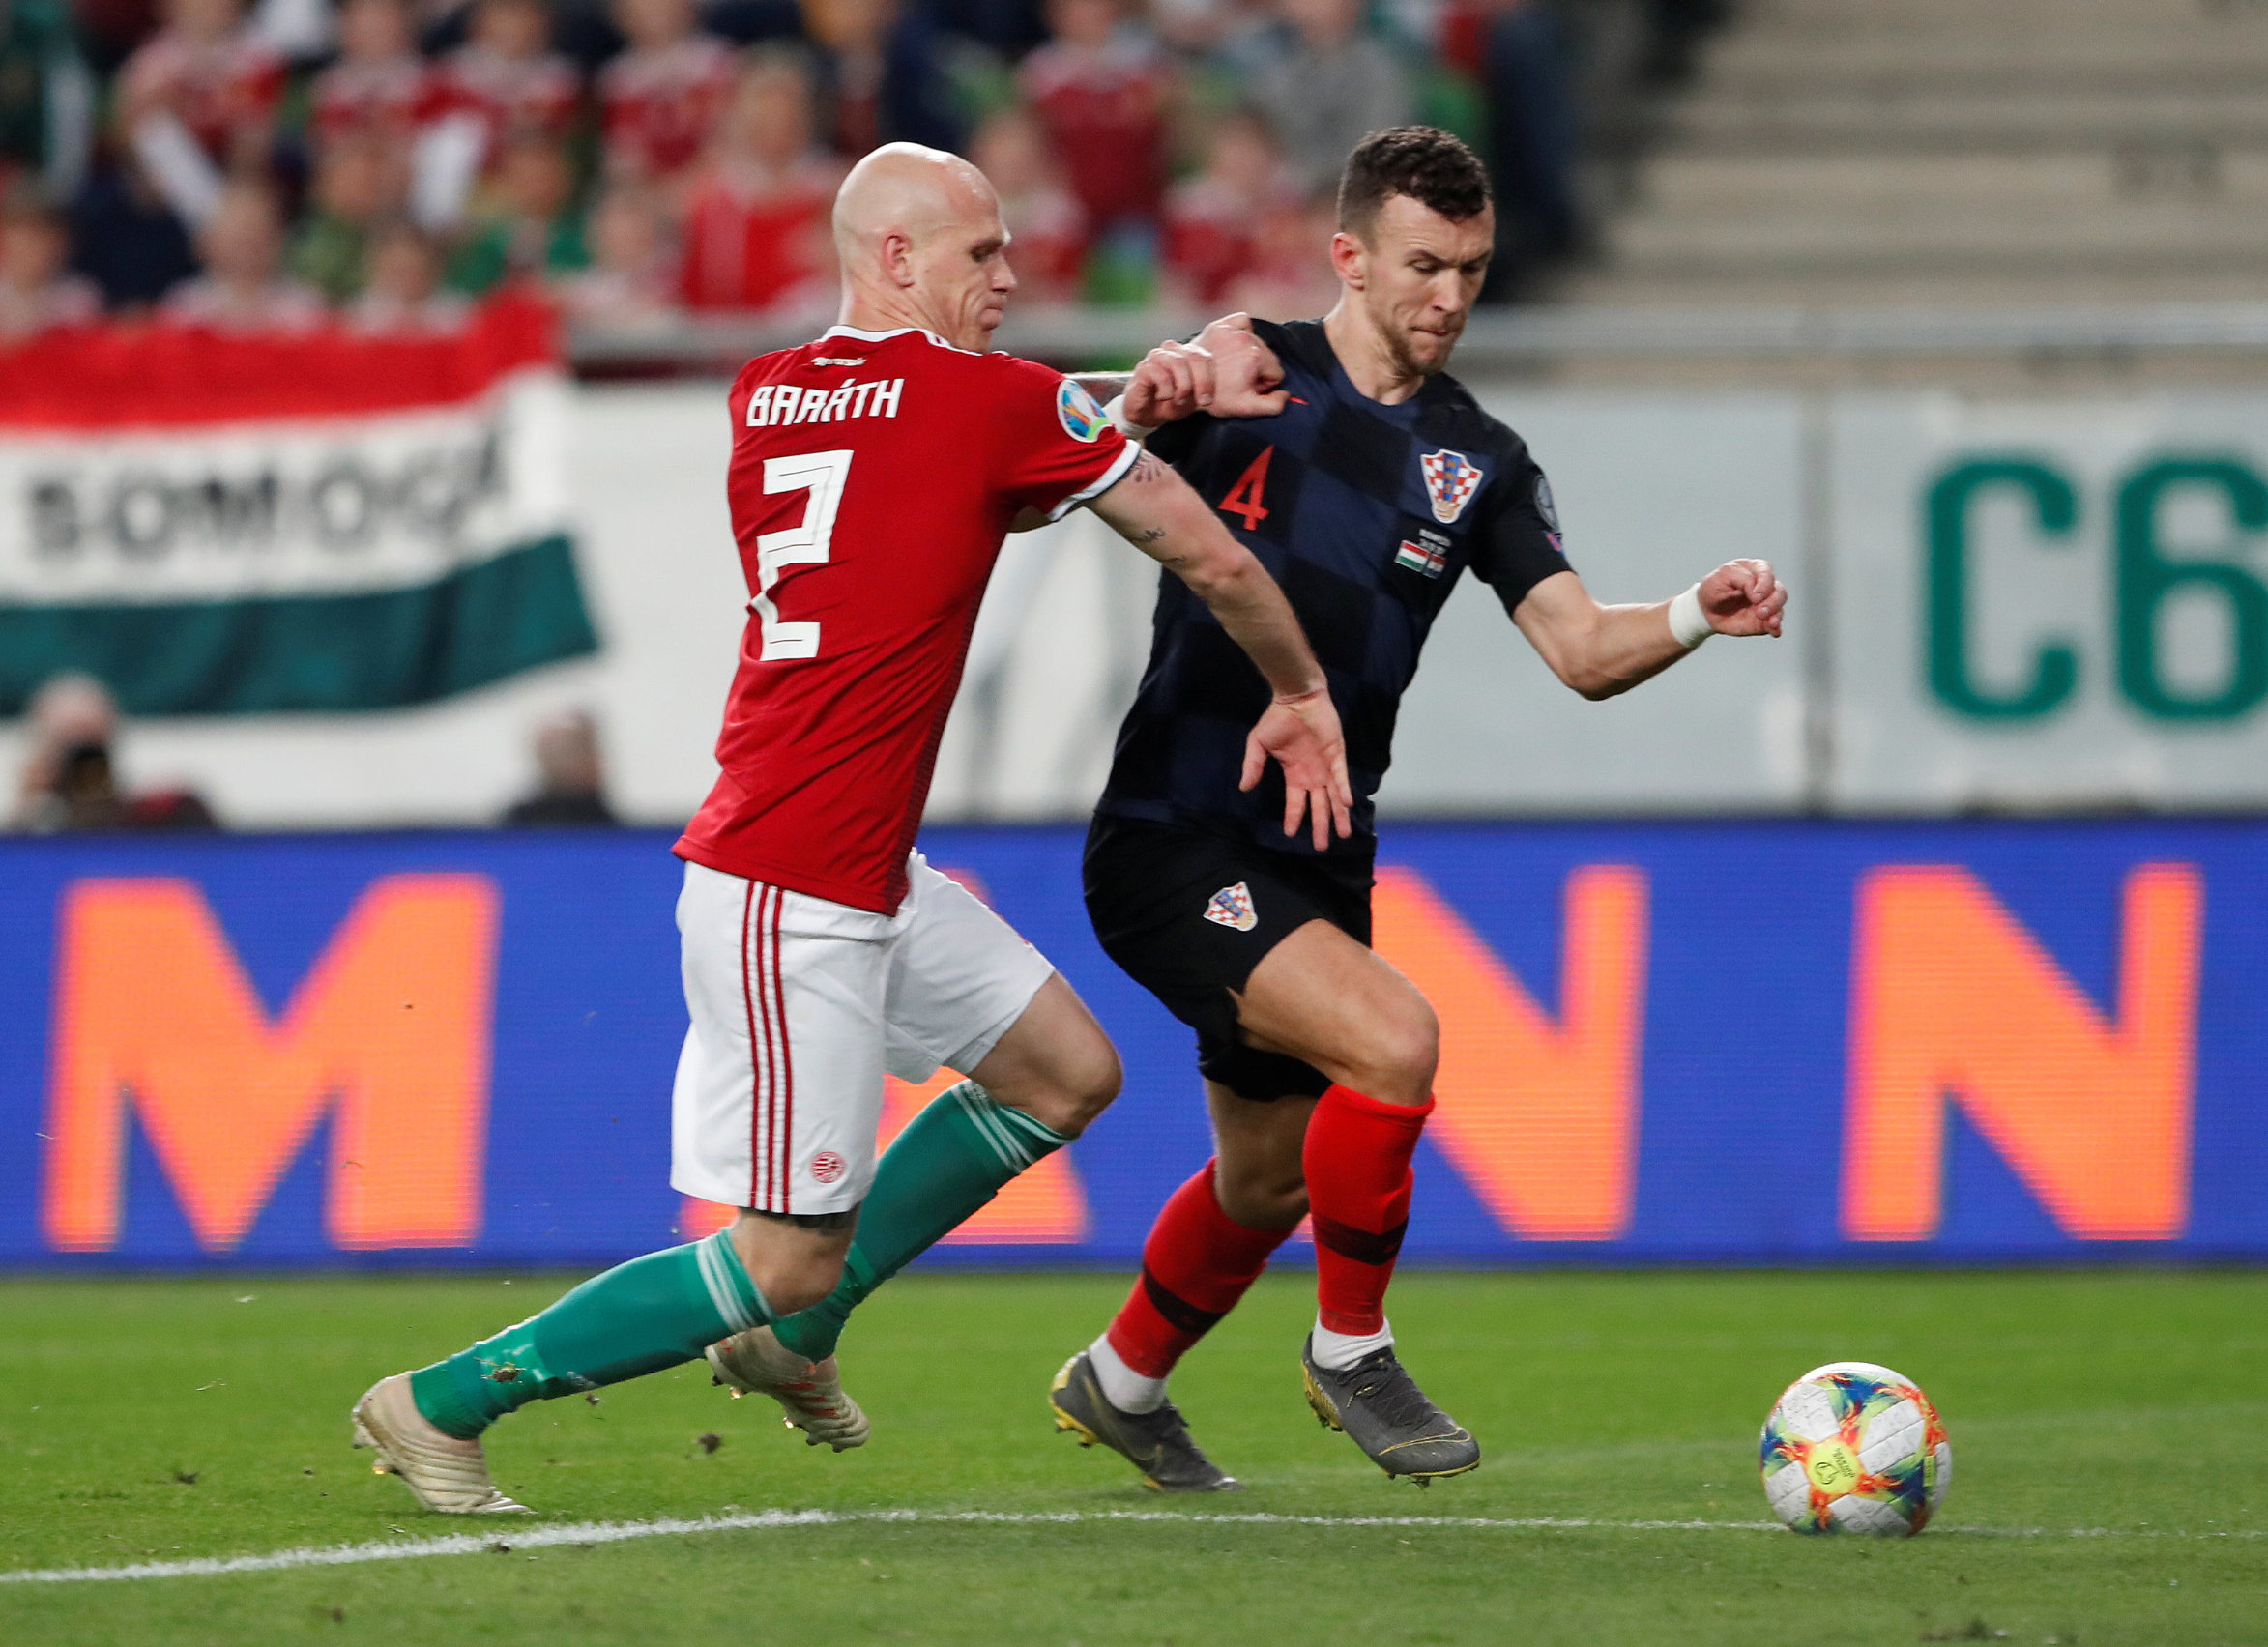 Soccer Football - Euro 2020 Qualifier - Group E - Hungary v Croatia - Groupama Arena, Budapest, Hungary - March 24, 2019  Croatia's Ivan Perisic in action with Hungary's Botond Barath   REUTERS/Bernadett Szabo